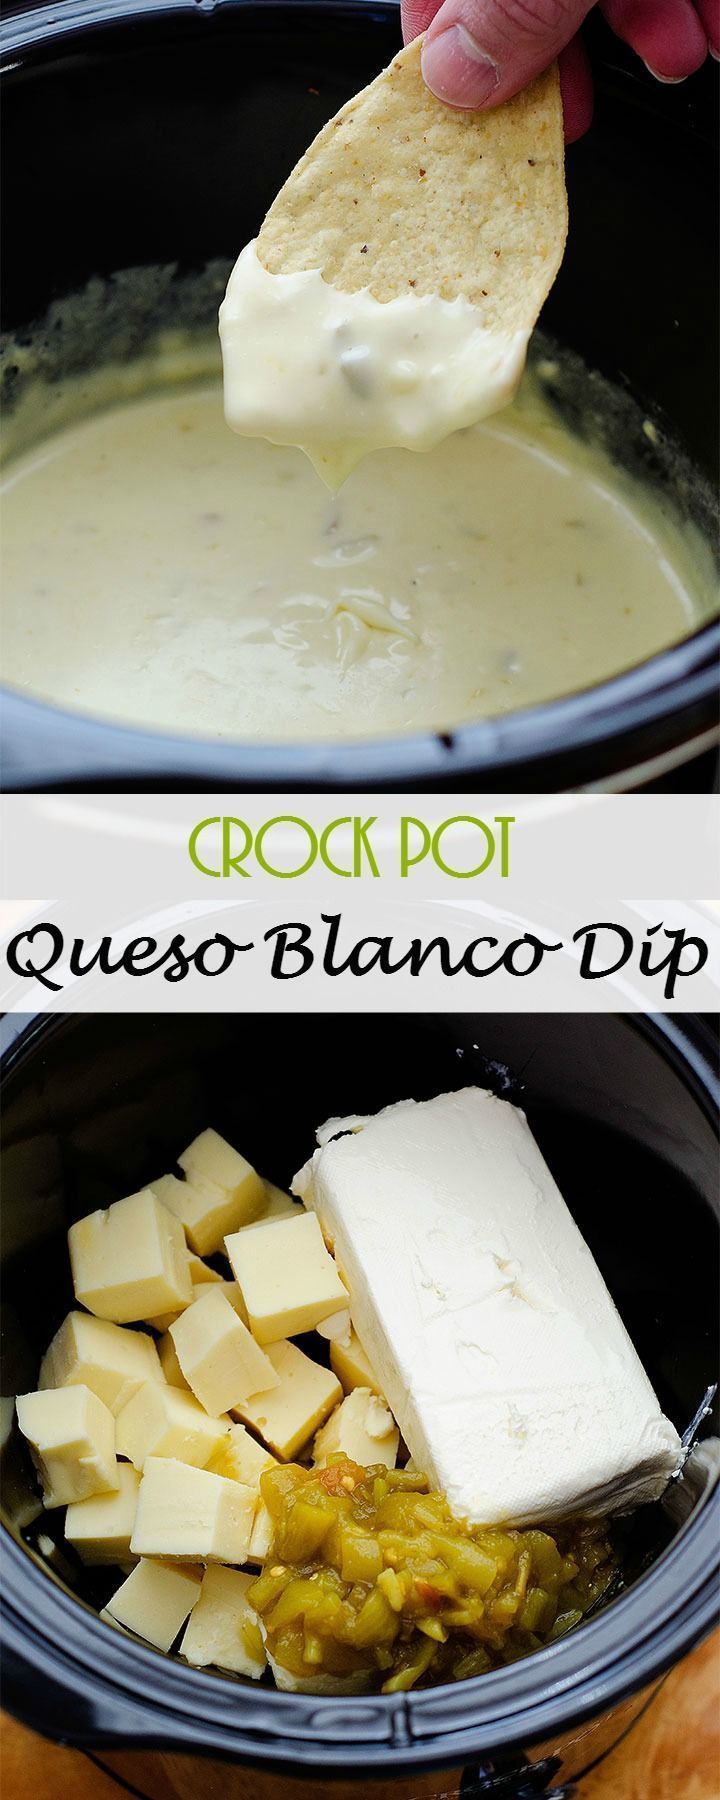 This homemade Crock Pot Queso Blanco Dip is one of the most delicious queso dips you'll ever make. It's so easy, just throw everything into a crock pot and let it do it's thing. Warm gooey white cheese with green chilies, perfect snack for the big game.